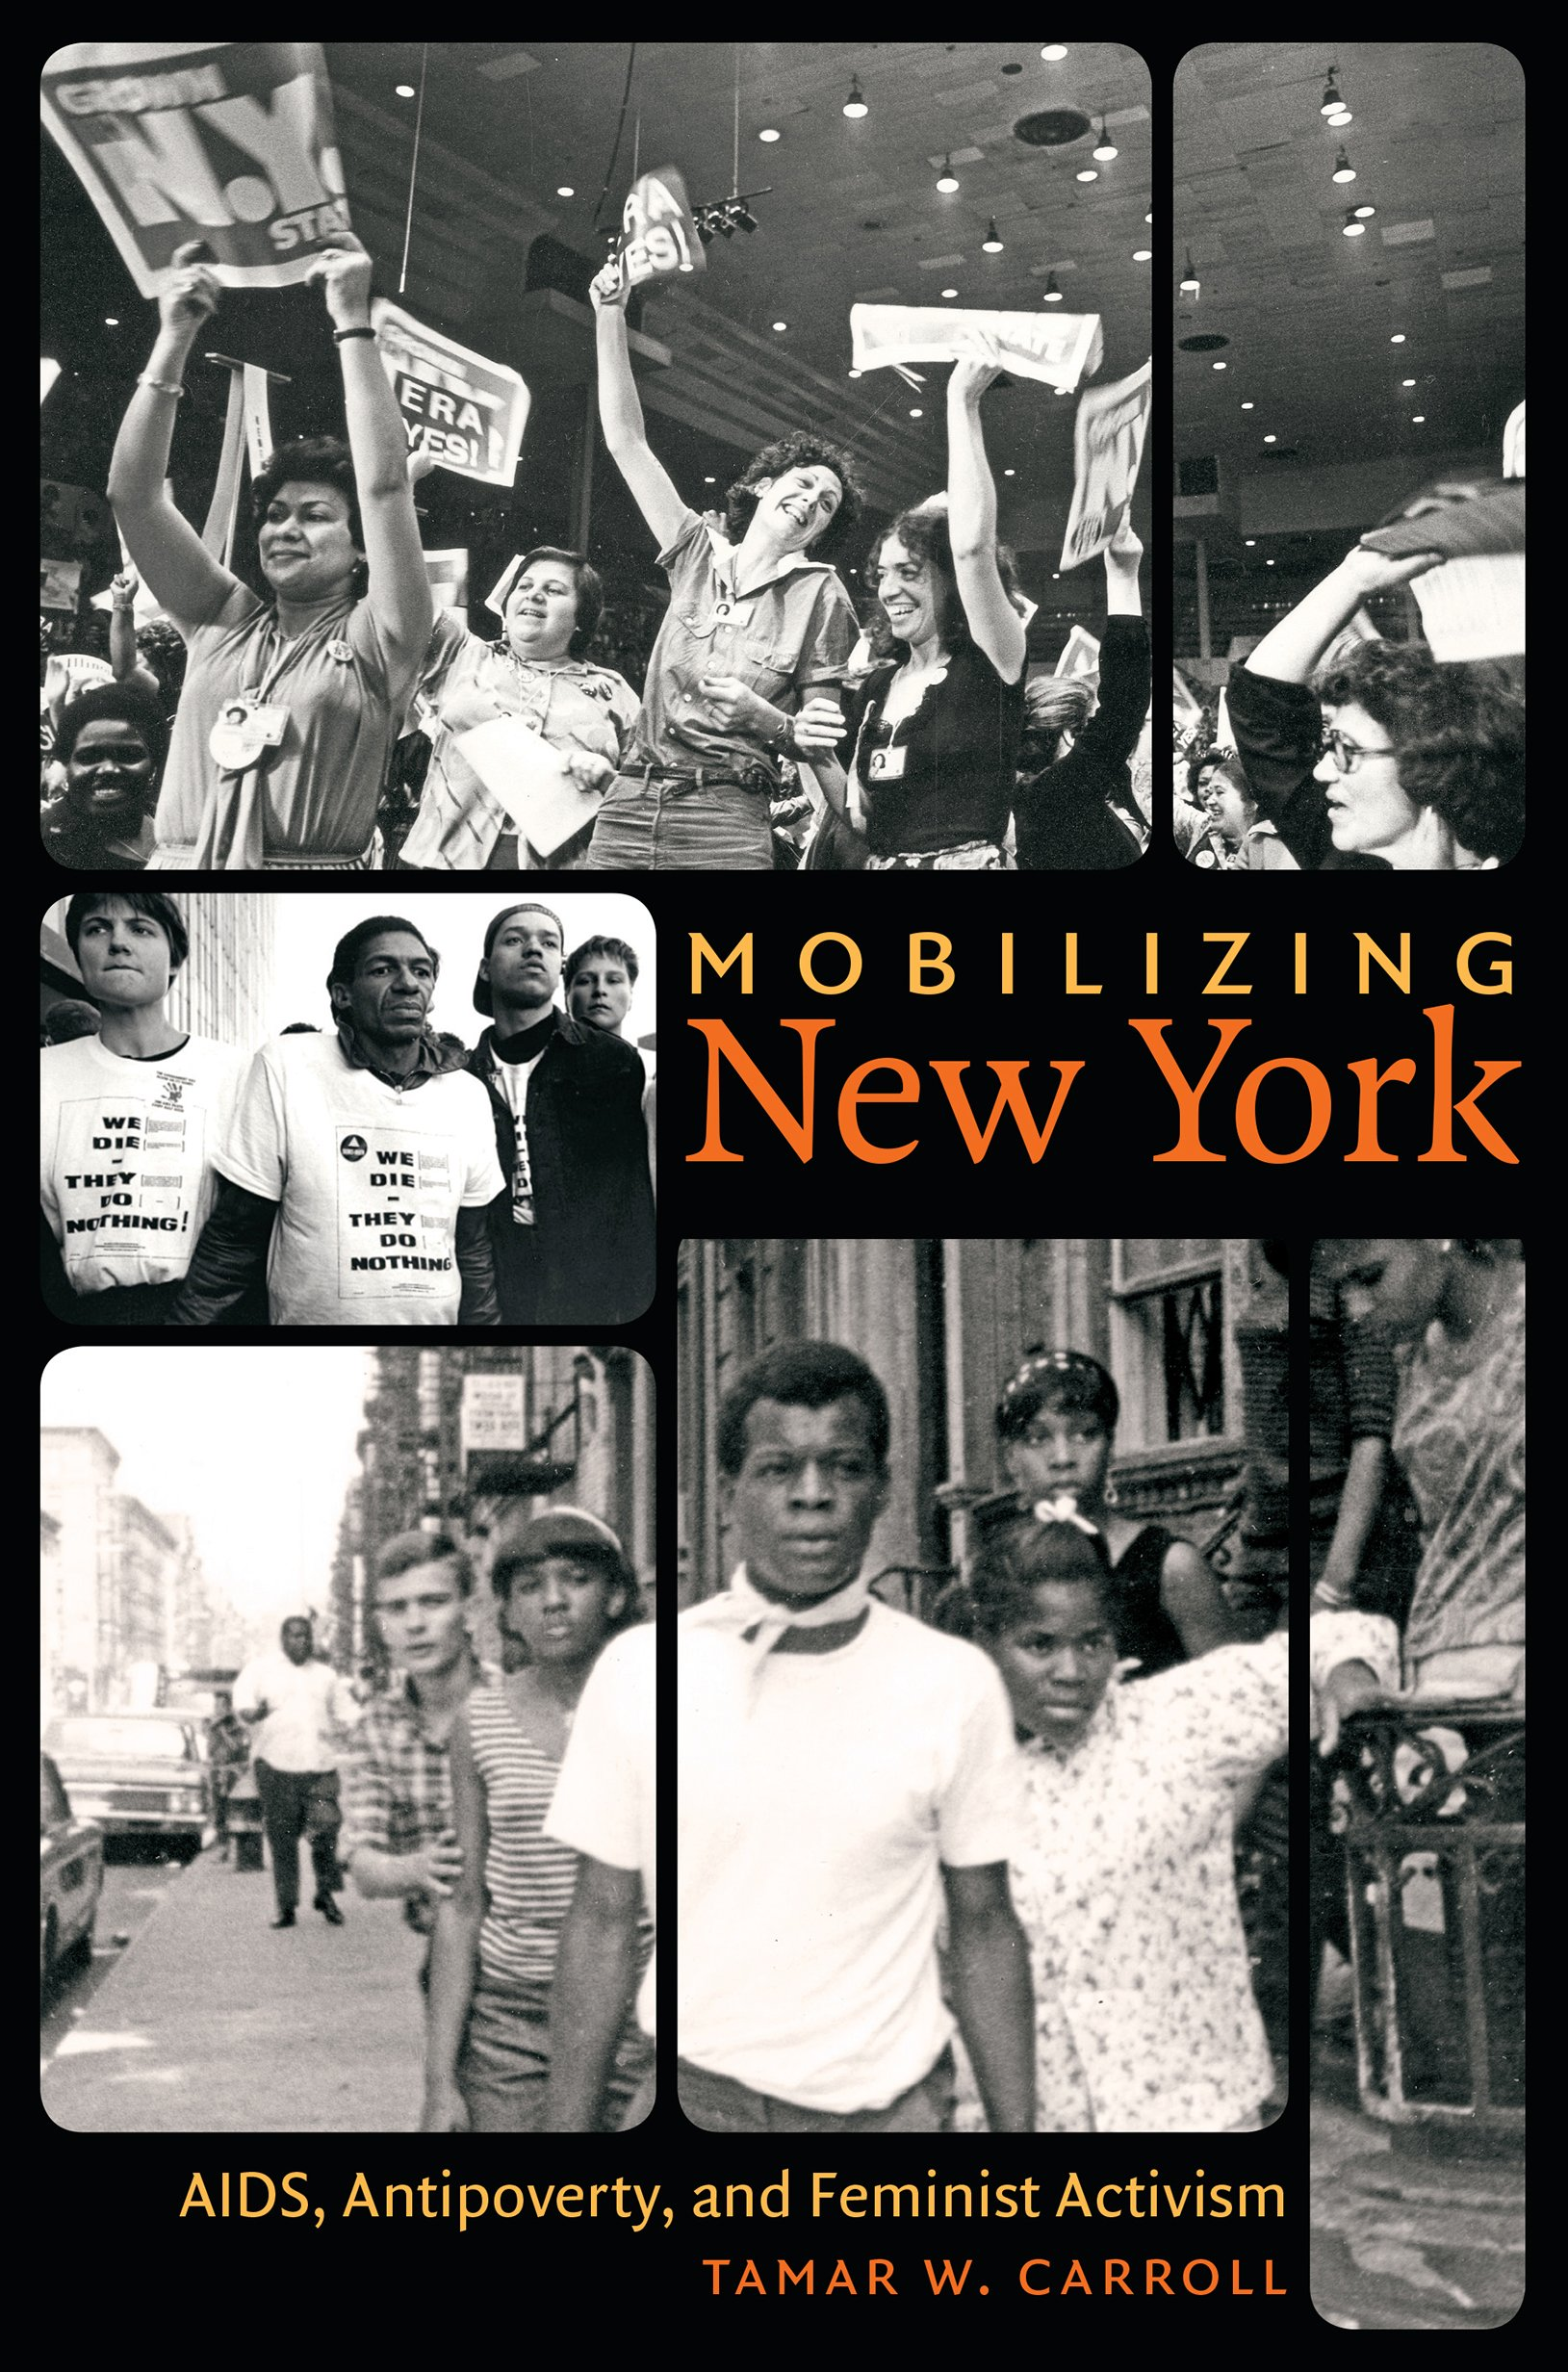 71a81858eaf3 Mobilizing New York  AIDS, Antipoverty, and Feminist Activism ...